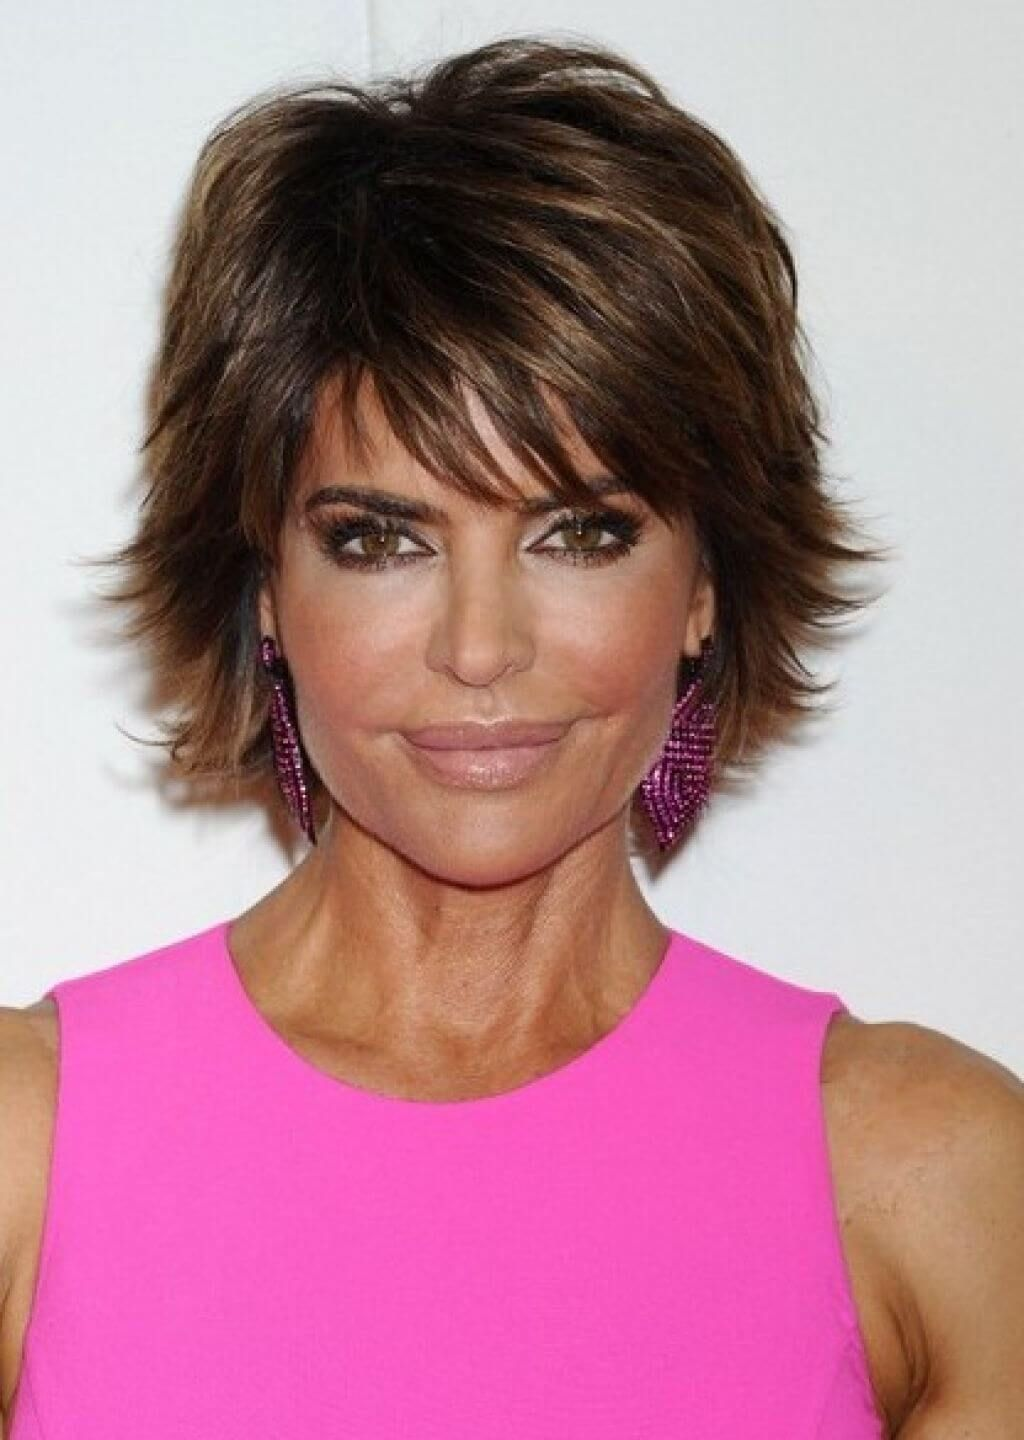 60 Hairstyles for Women Over 50 with Fine Hair | Haircuts for wavy hair, Womens hairstyles, Hair ...